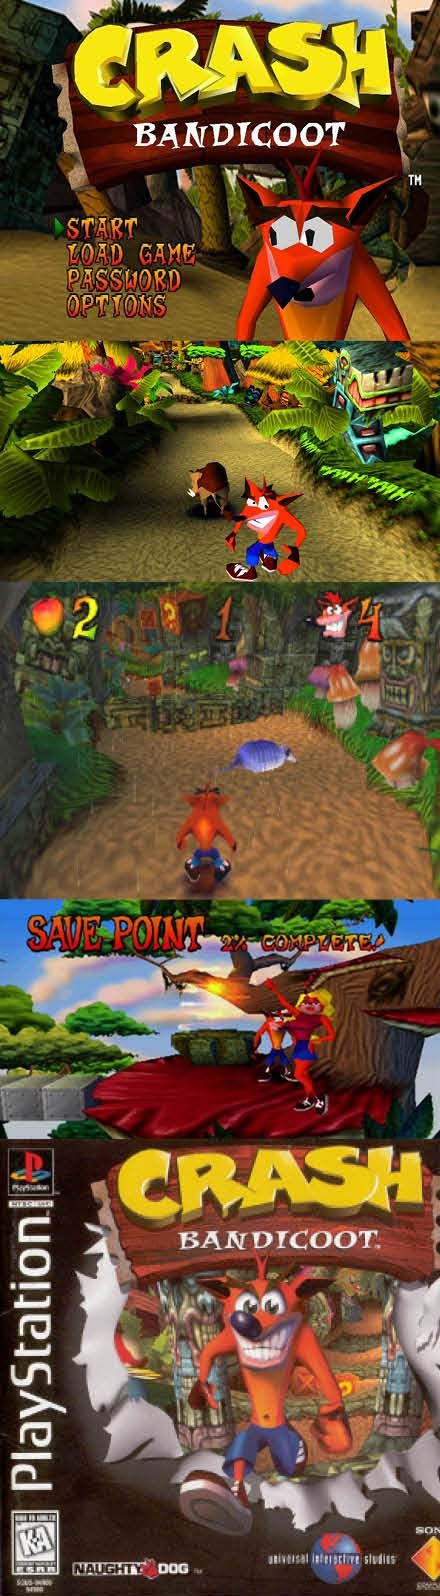 #RetroGamer When Crash #Bandicoot first came out it was holding its own with #Mario! http://www.levelgamingground.com/crash-bandicoot-review.html